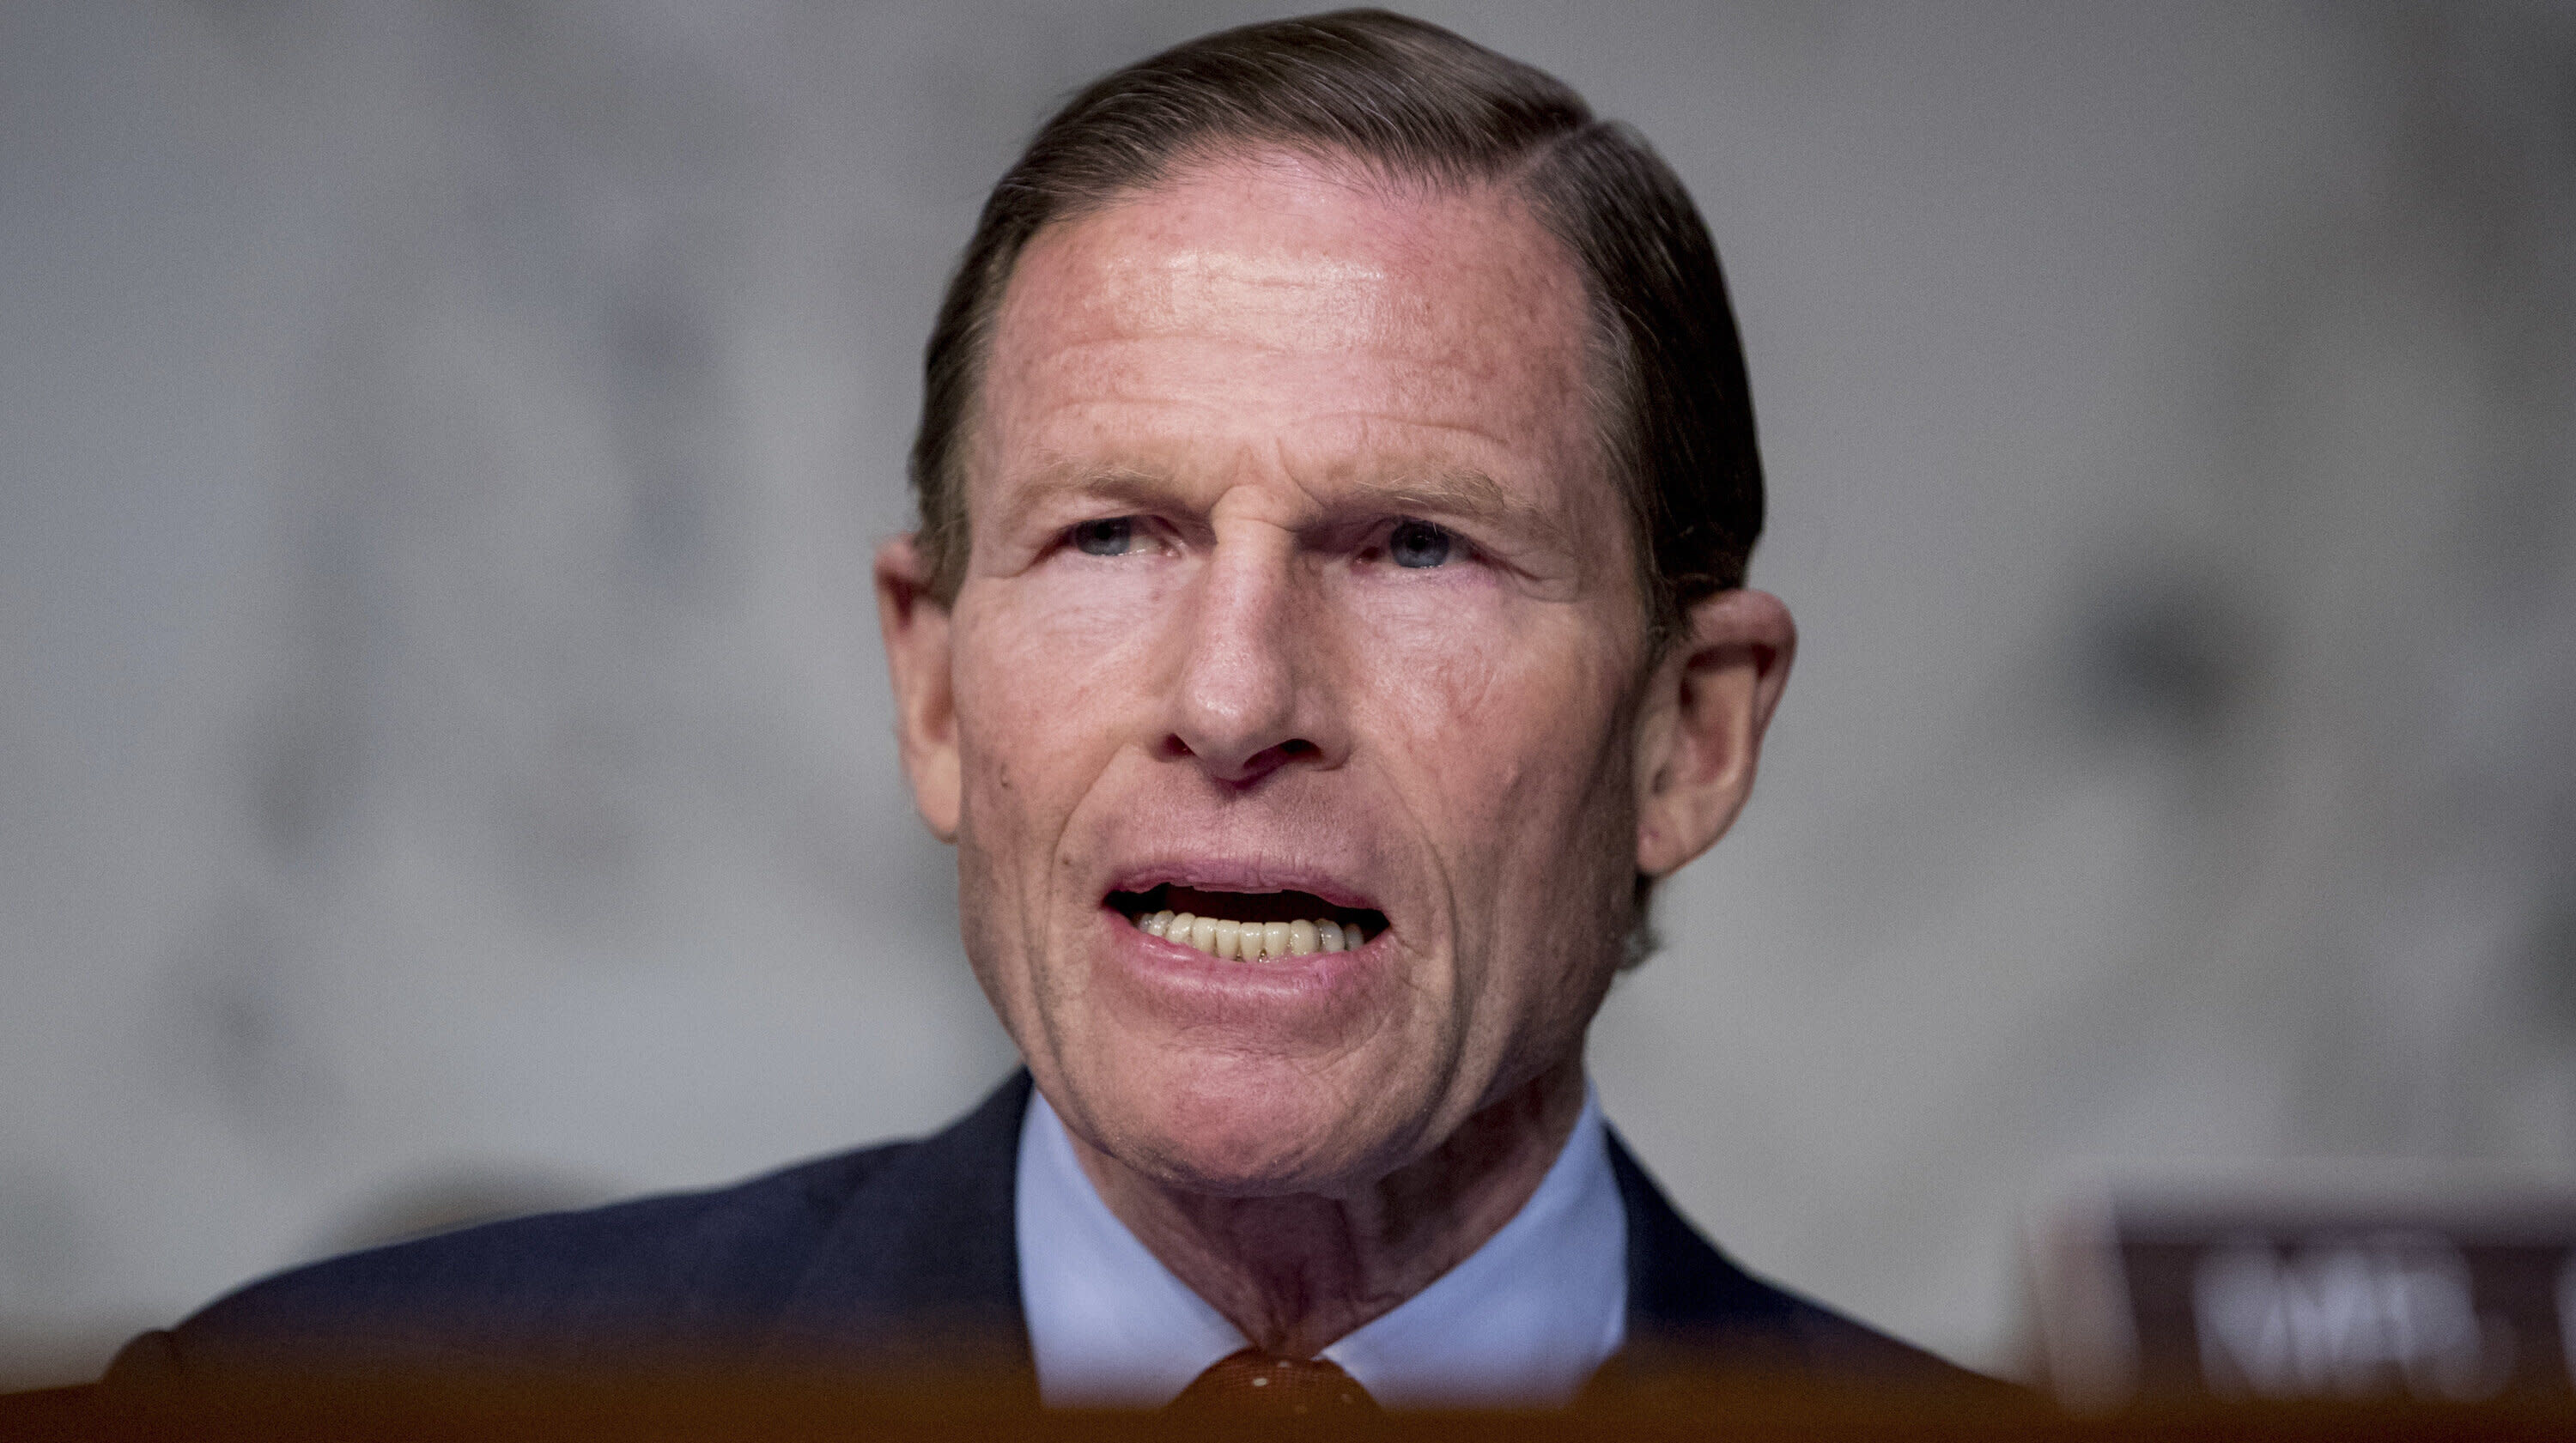 Sen. Blumenthal Says Donald Trump Jr. Should Be 'Locked Up' If He Defies Subpoena